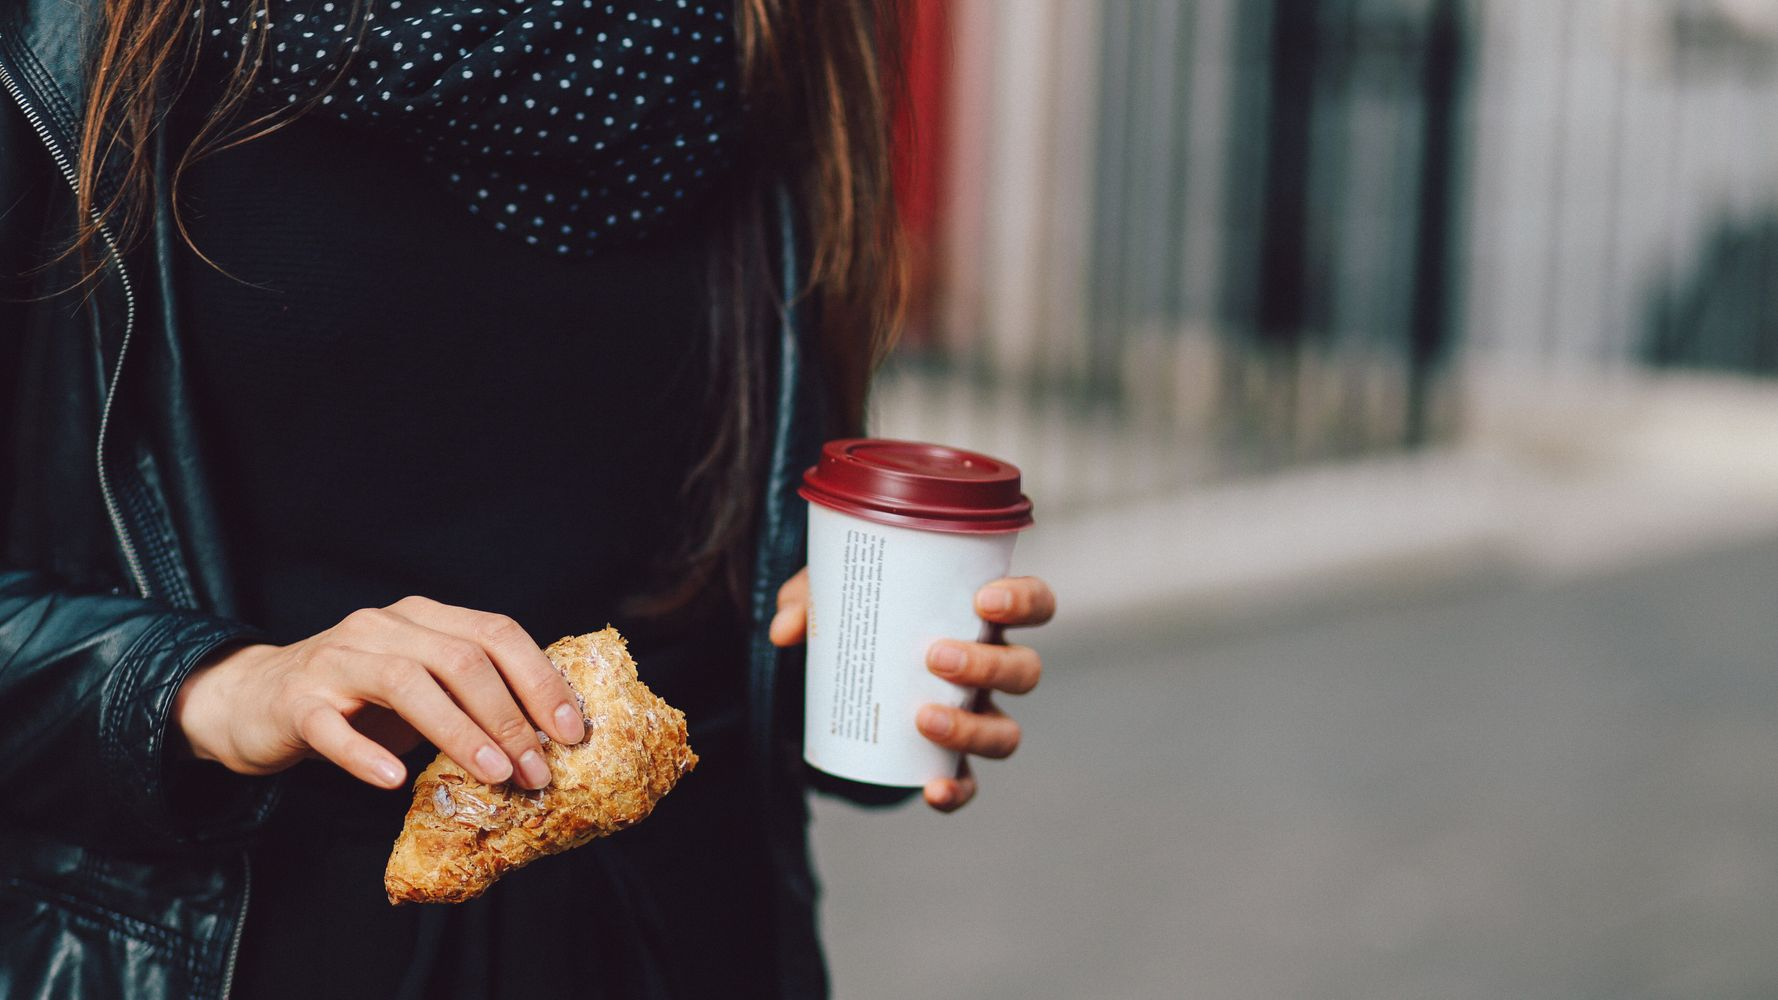 Is 'Fast Coffee' Going To Leave A Bitter Taste?